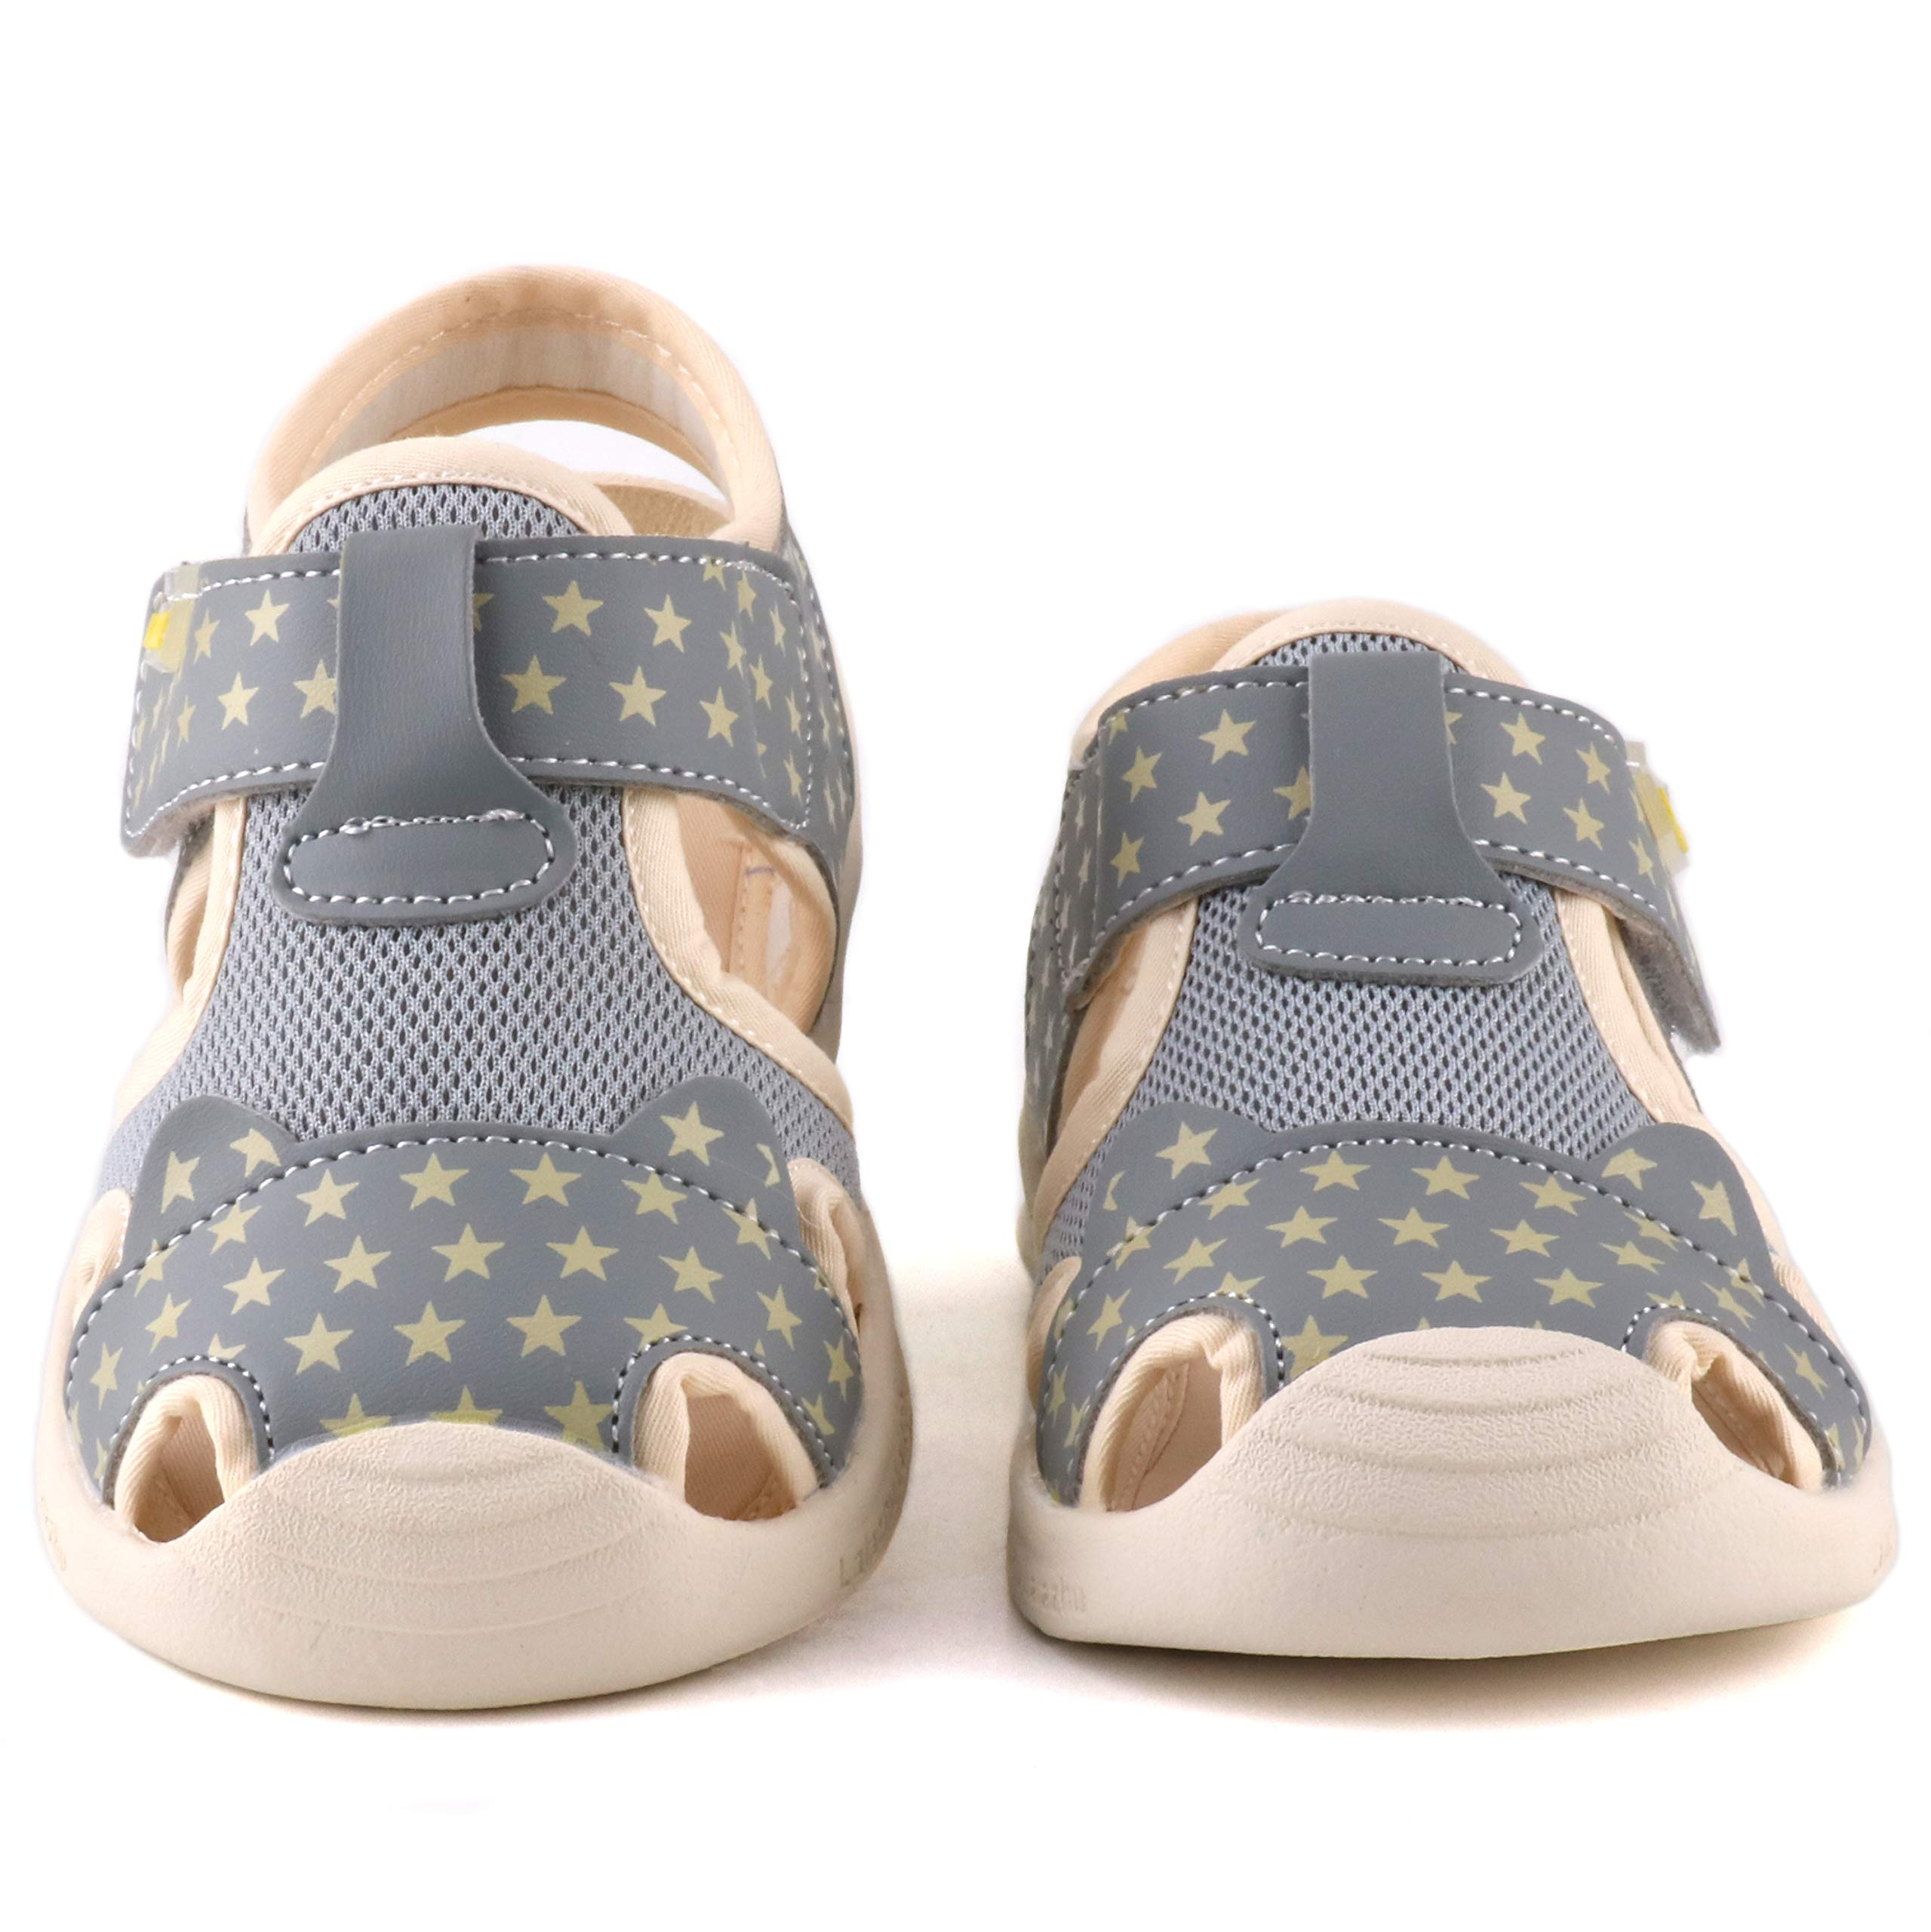 Moceen Kids Soft Microfiber Leather Sandals Light-Up Toddler Boys/Girls Closed Toe Pre School Shoes,Grey,8102 115 by Moceen (Image #7)